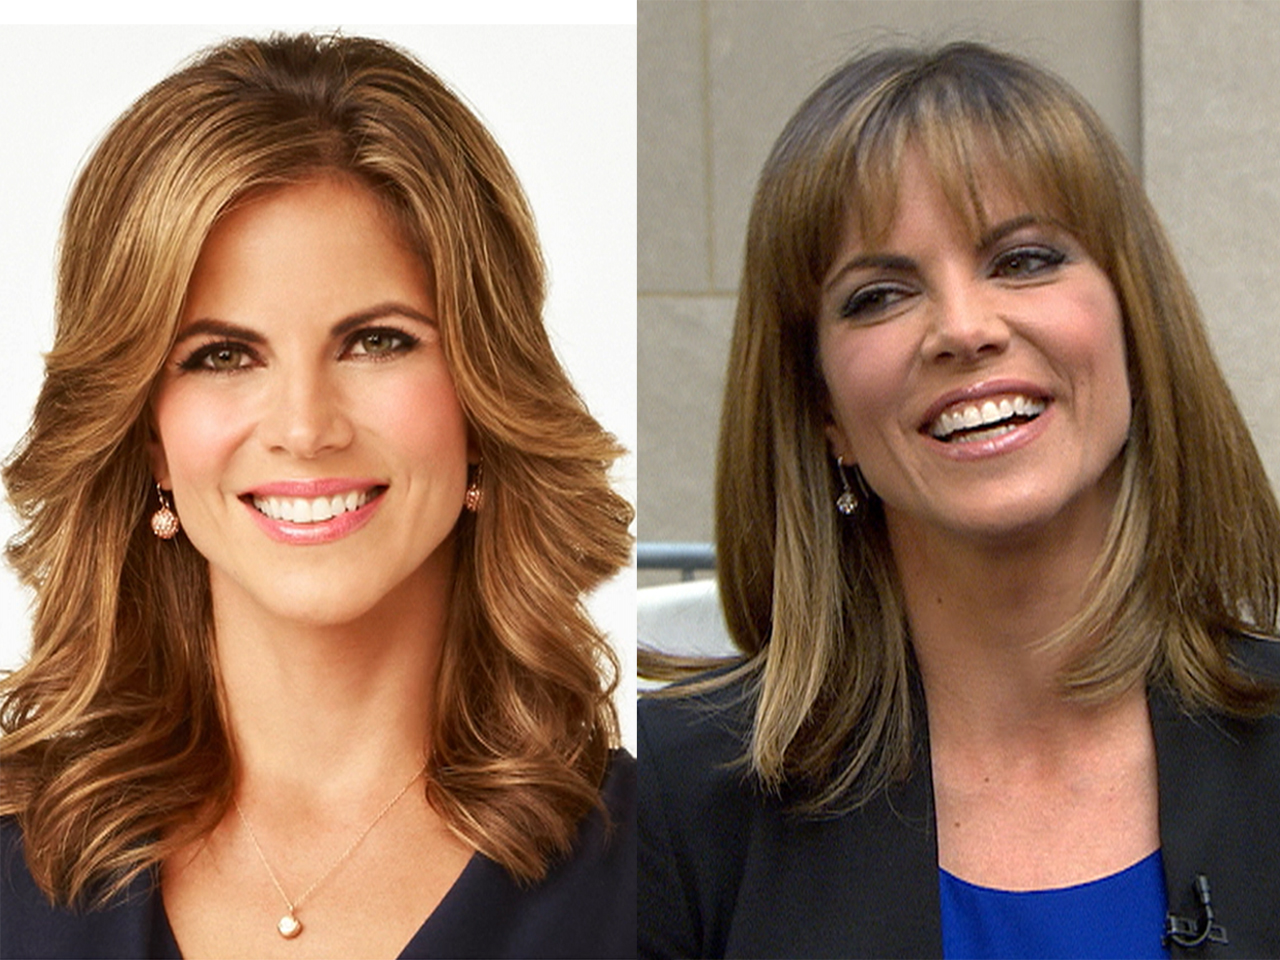 Mommy You Look Like A Boy Natalie Morales Son Pans Her